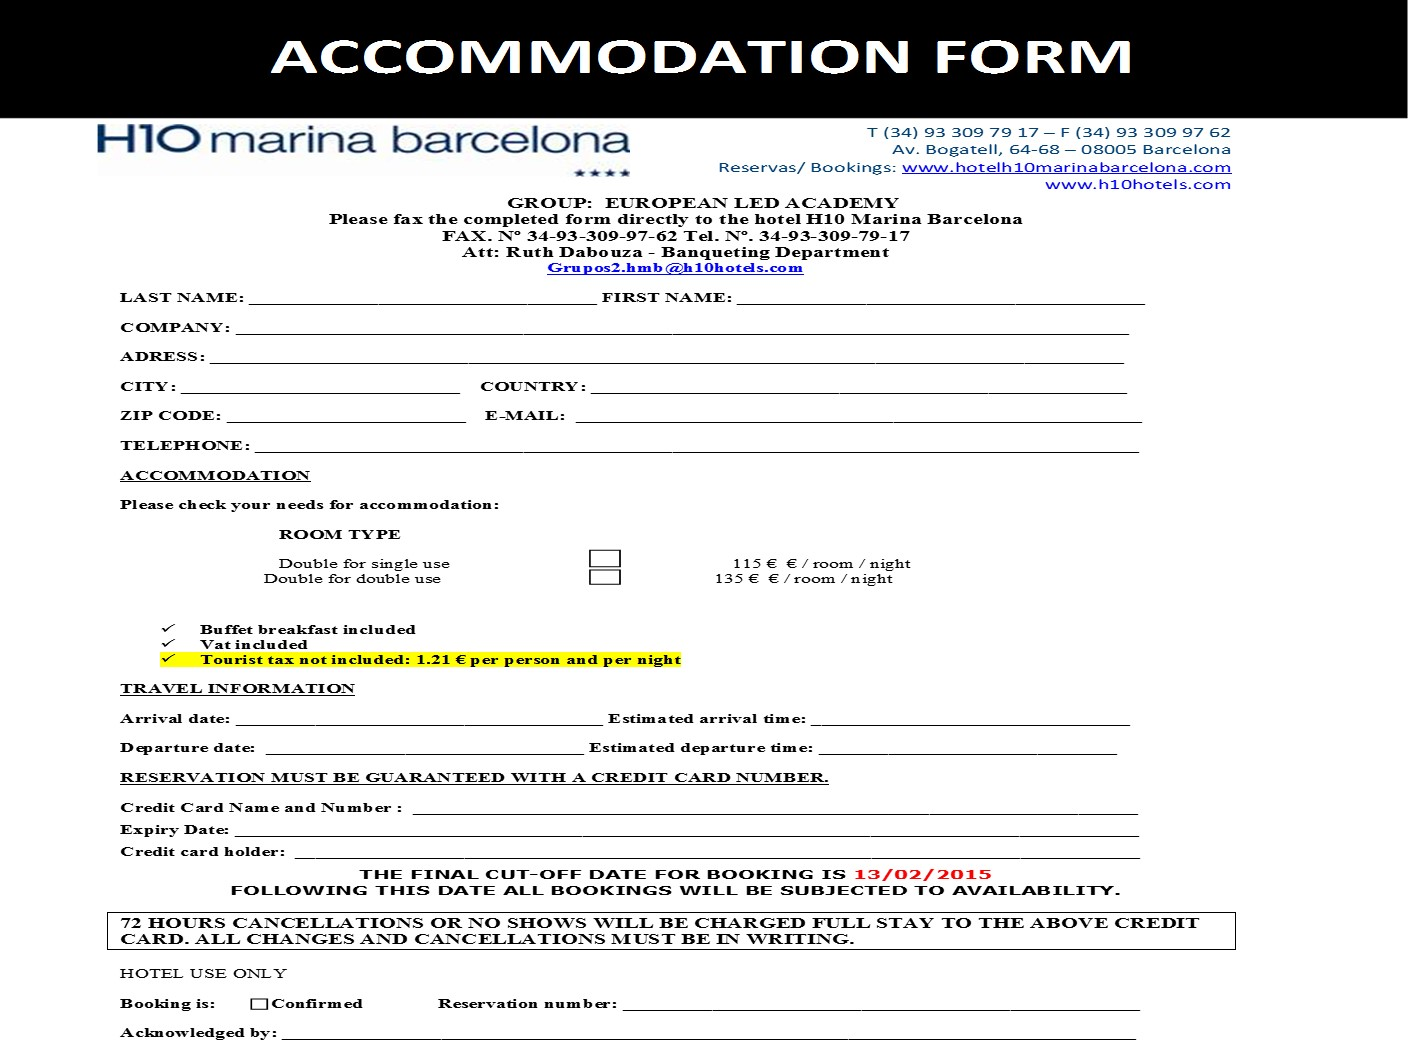 LED ACADEMY Barcelone  Accommodation Form